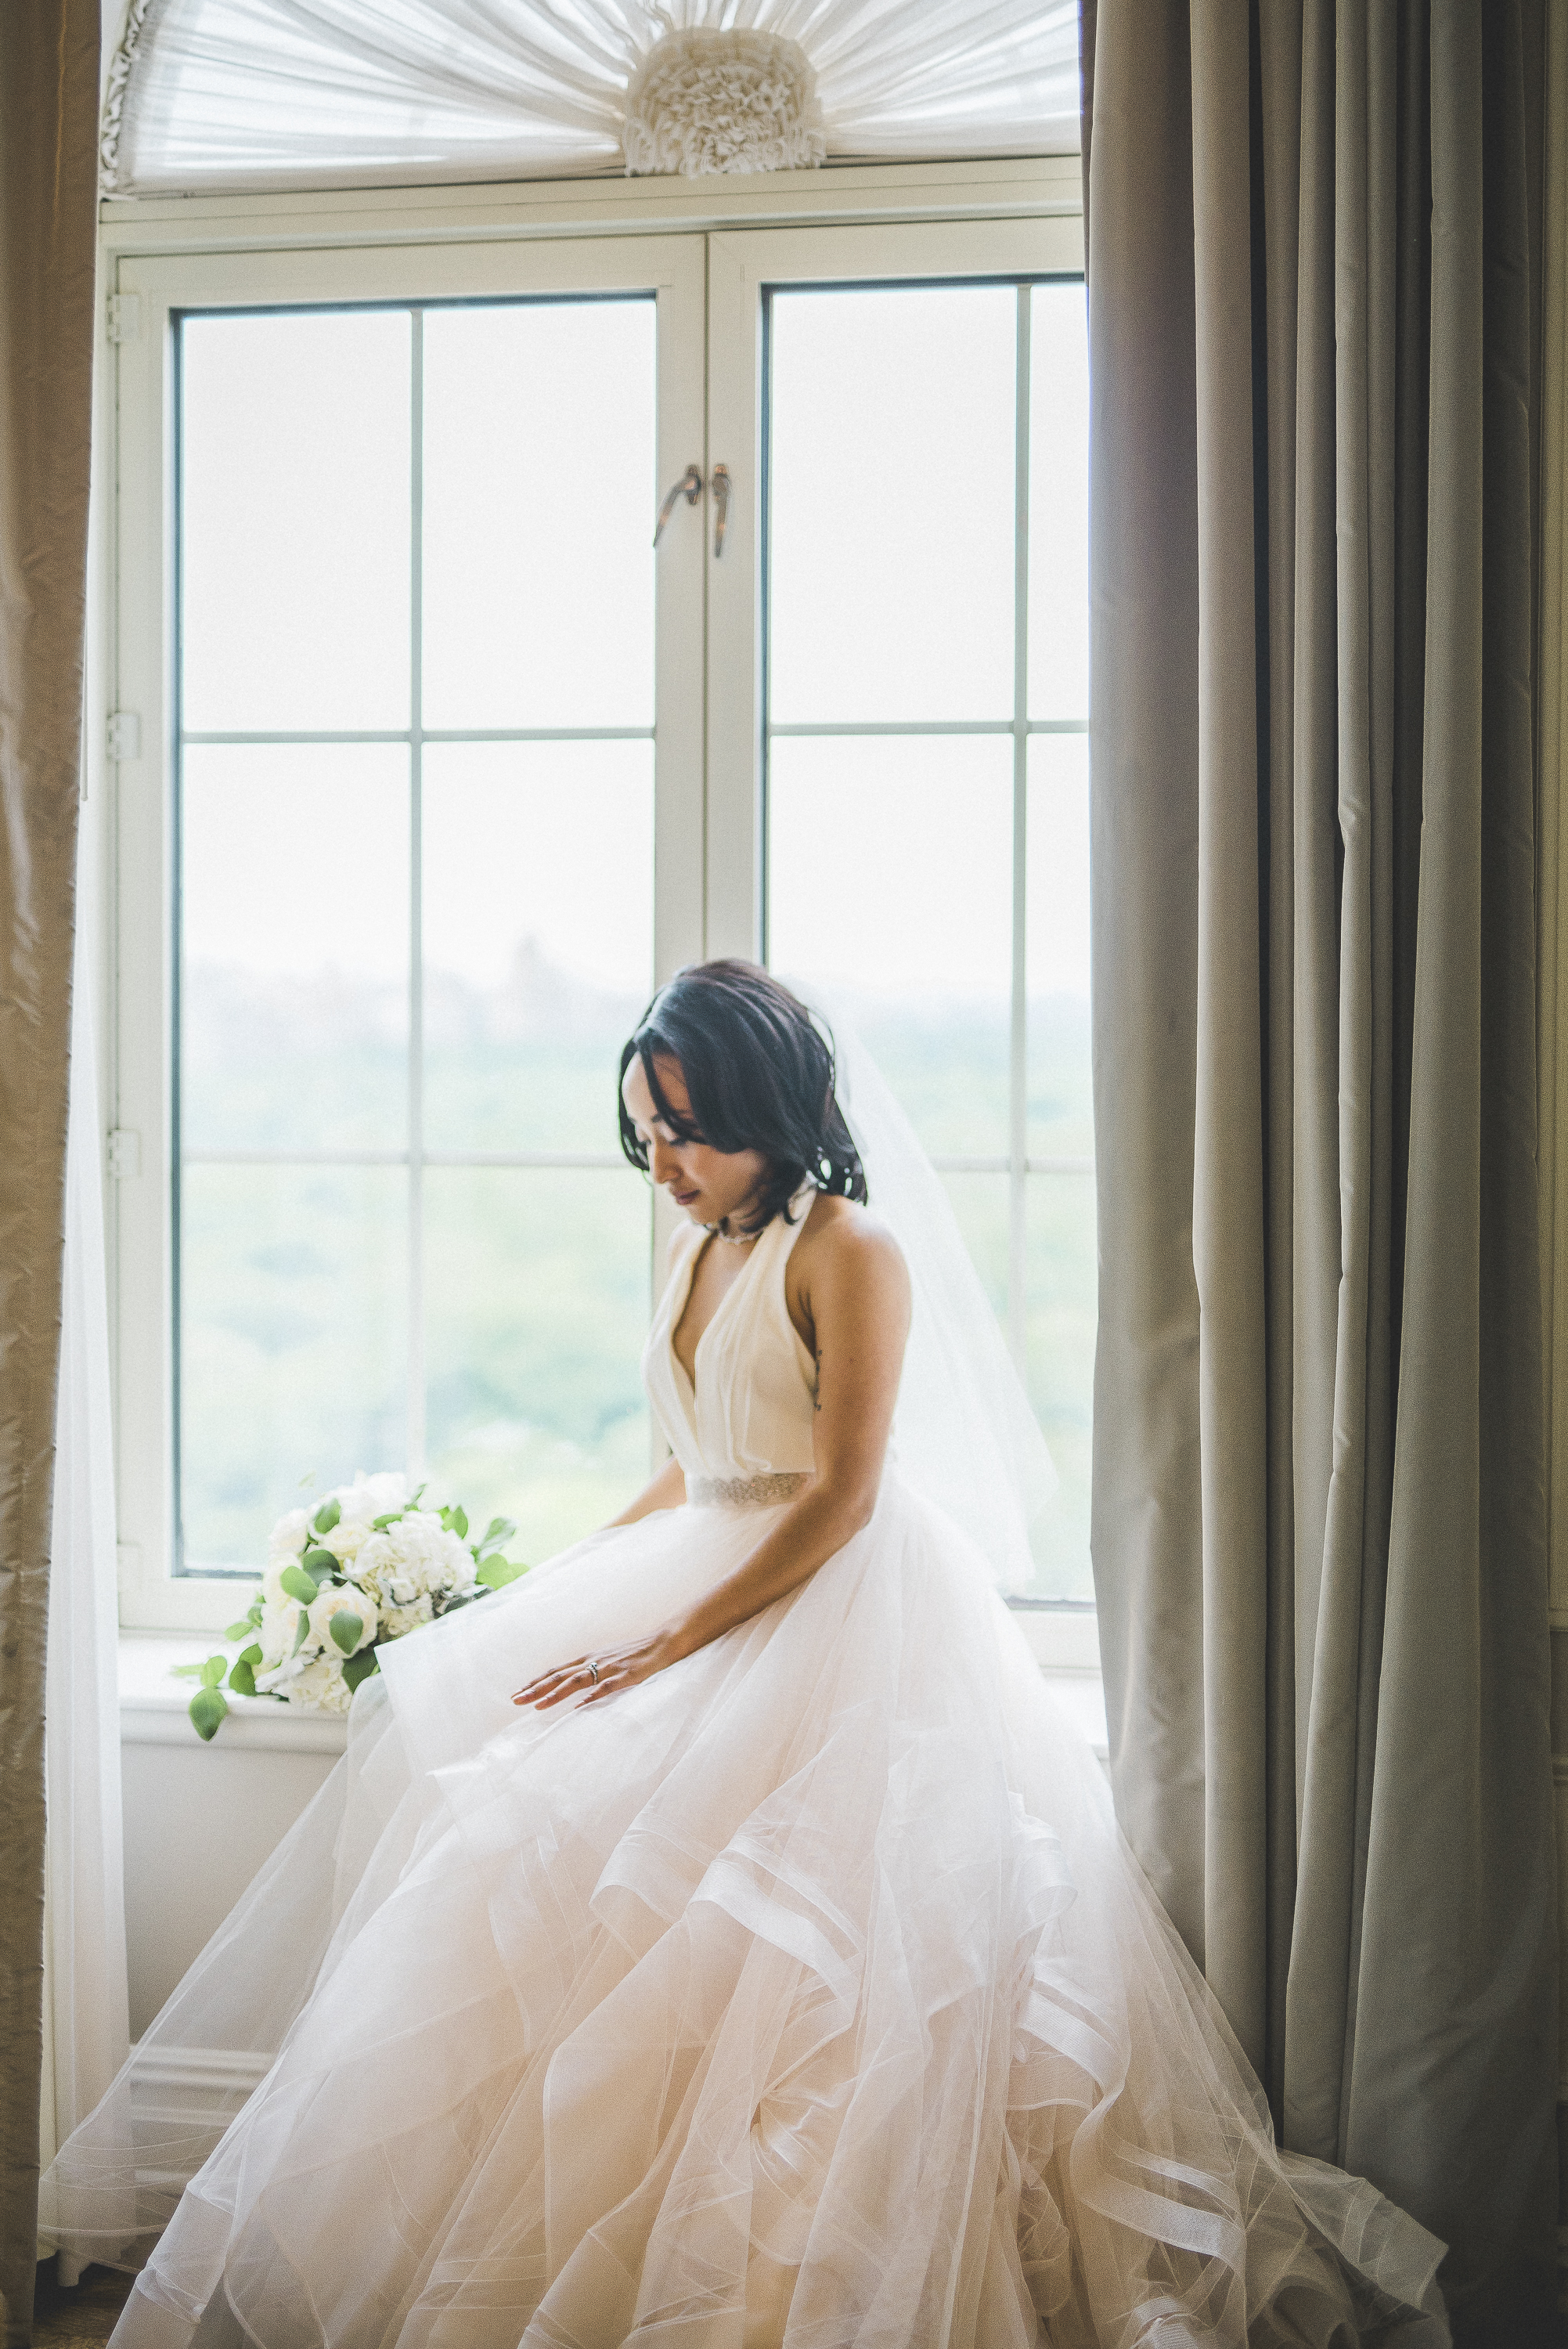 Bride in Plaza Hotel Suite Picture Window NYC wedding inspiration